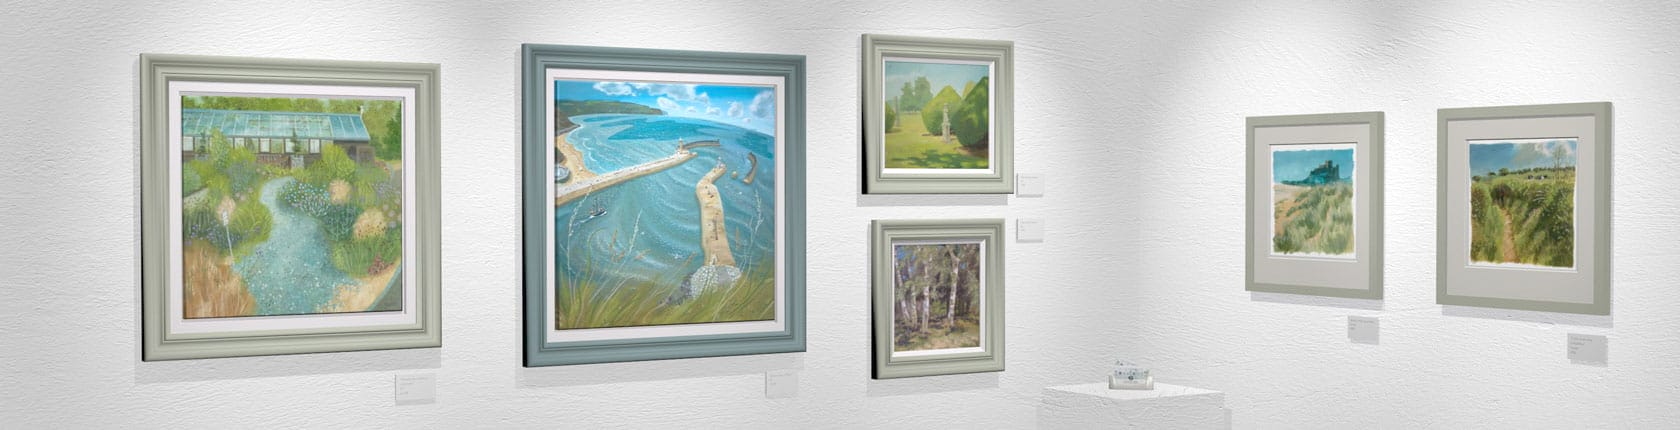 Original landscape paintings hang on a wall in a gallery